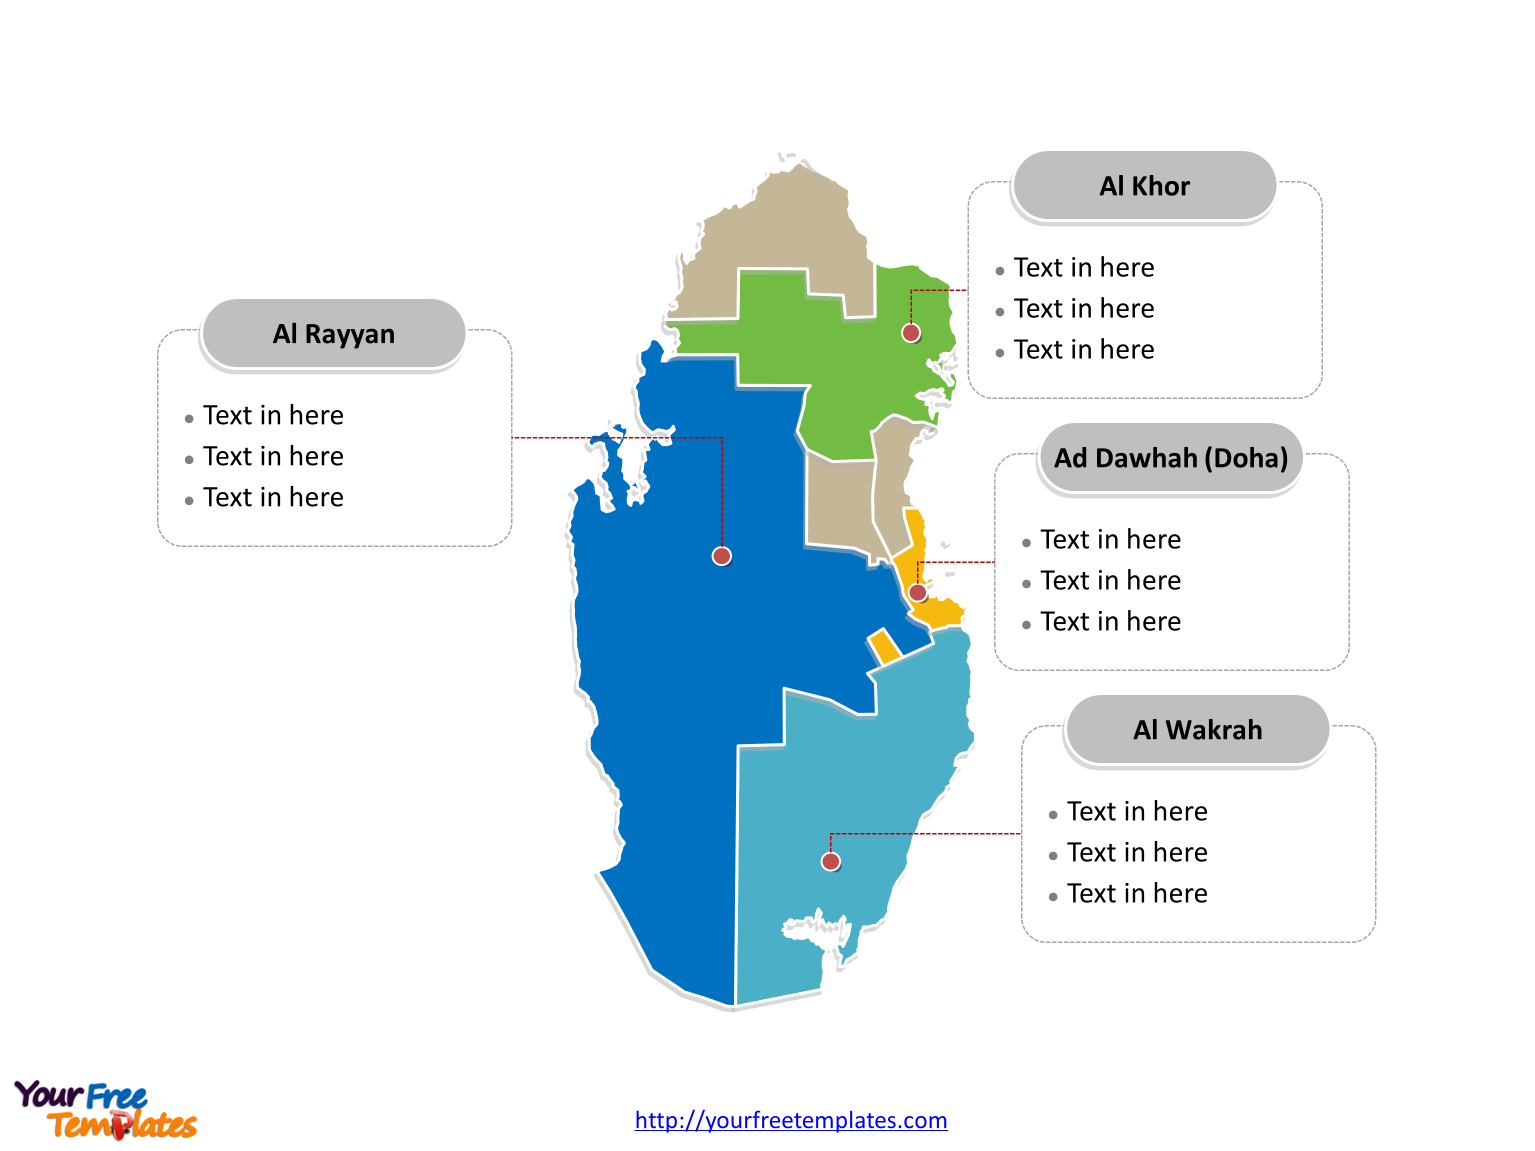 Free Qatar Editable Map - Free PowerPoint Templates on tanzania map, united arab emirates map, al udeid air base, middle east map, dead sea map, bahrain map, doha corniche, qatar airways, dushanbe map, qatar map, riyadh map, sana'a map, al jazeera, ankara map, kuwait map, abu dhabi, education city, world map, abu dhabi map, manama map, dubai map, mosul map, medina map, kuwait city, doha international airport, damascus map, jerusalem map, souq waqif, baghdad map, aspire tower,